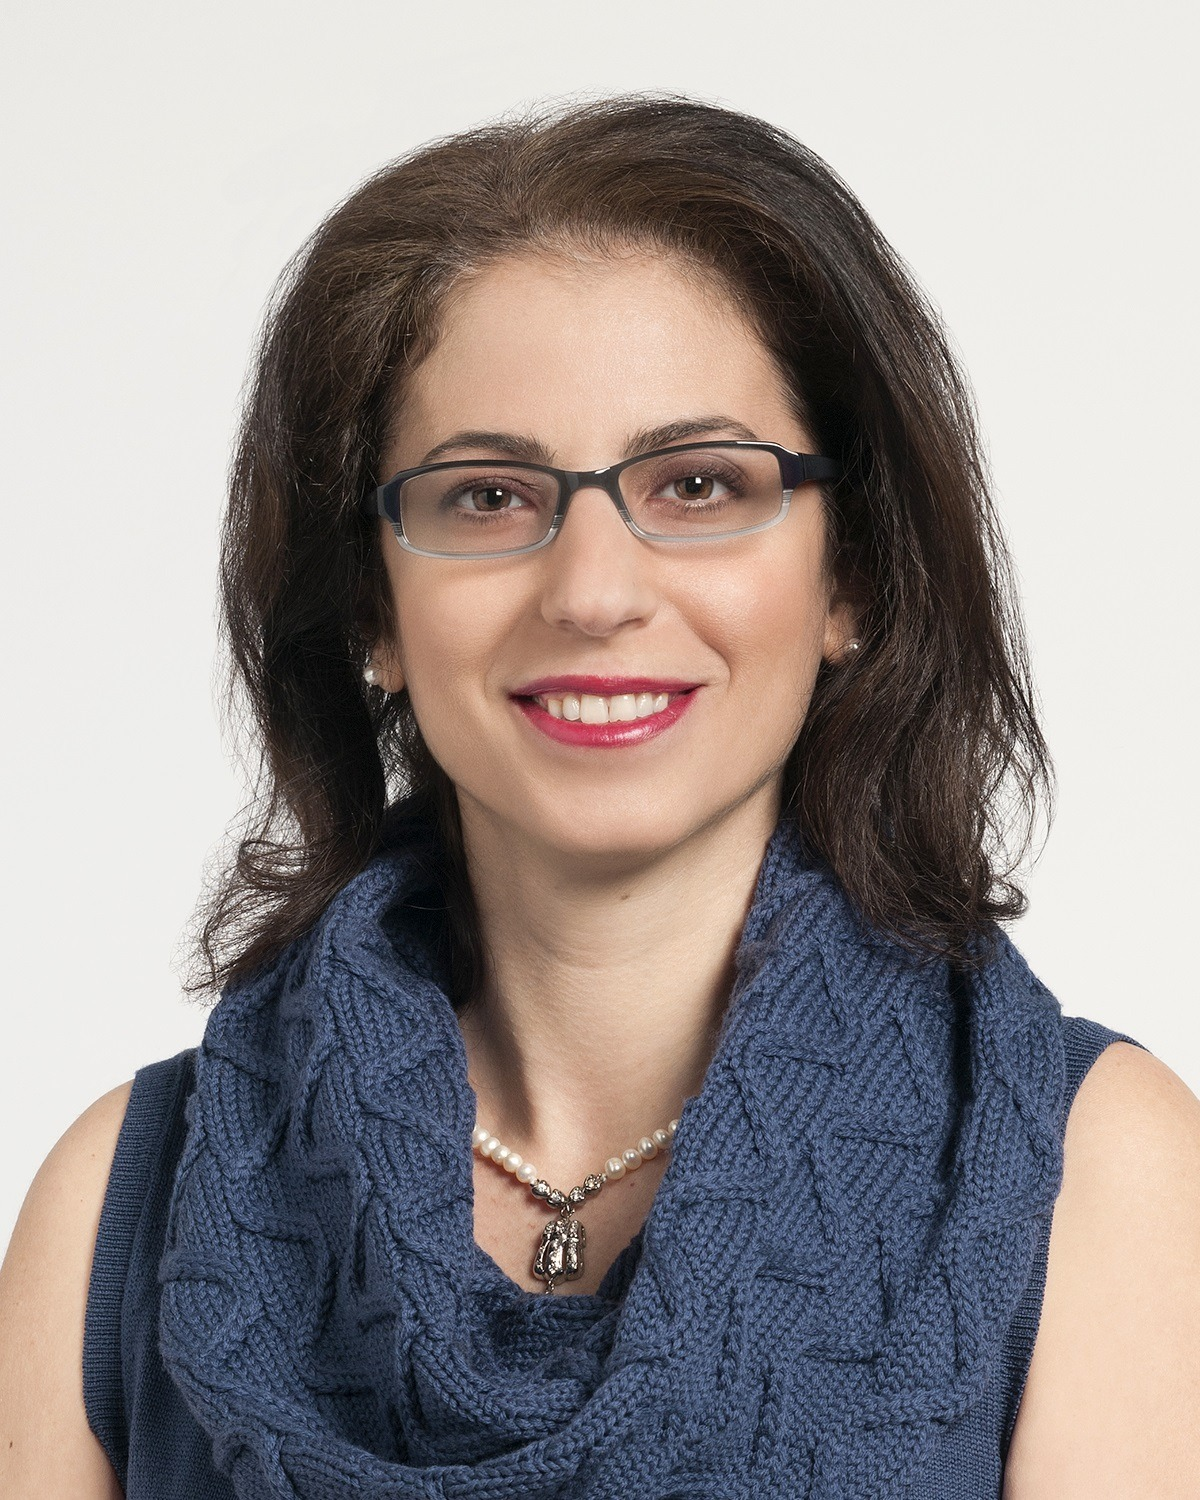 Cleveland Clinic Appoints Inaugural Chief Research Information Officer